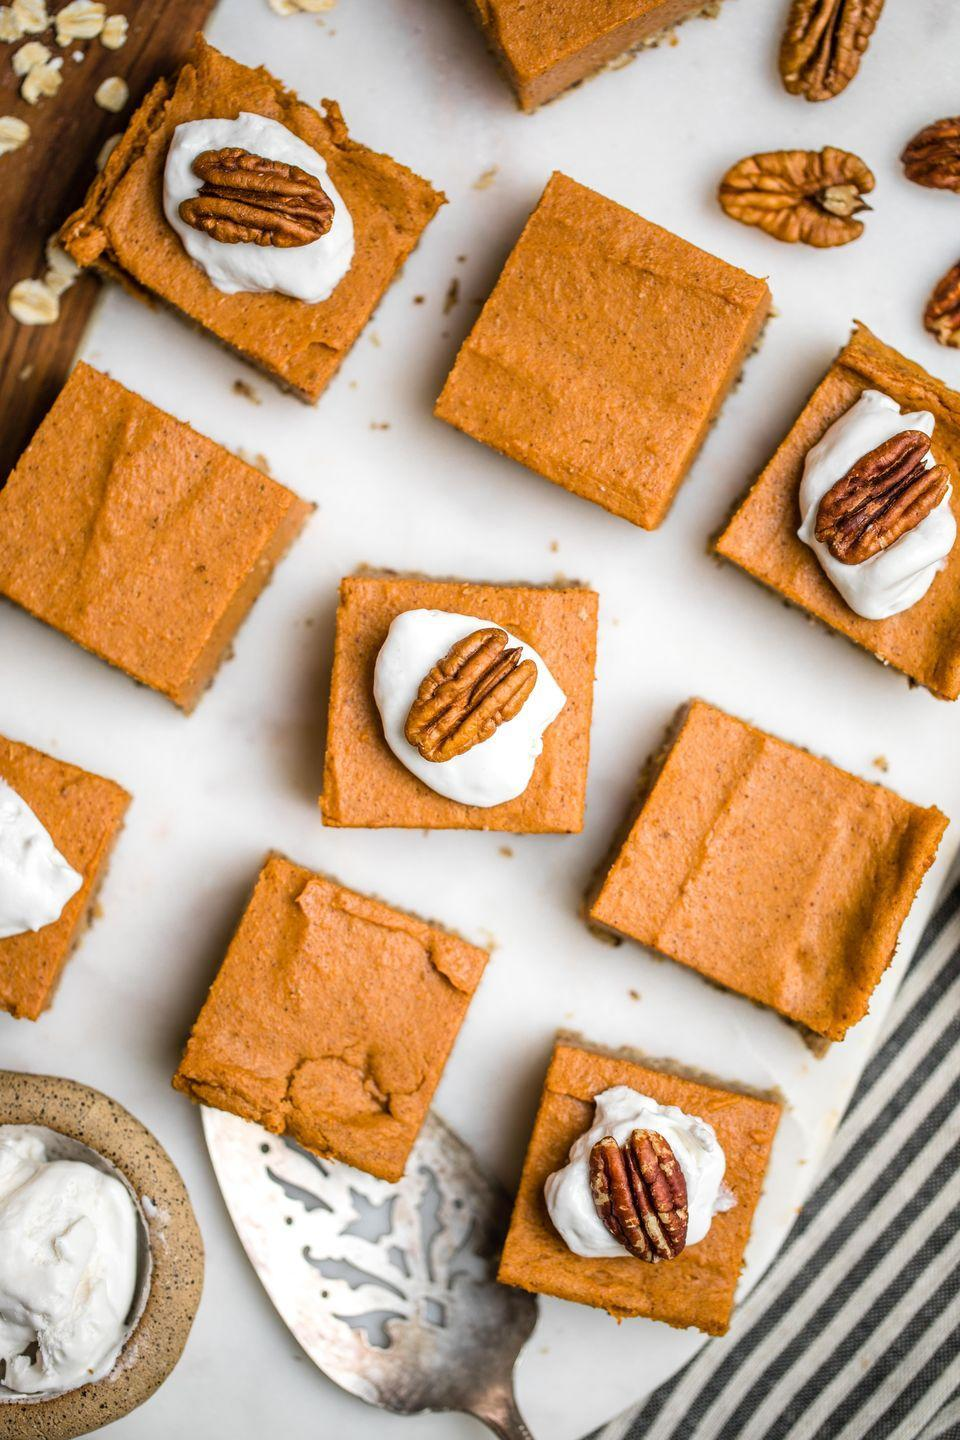 """<p>Looking for a sweet (potato) treat for dessert? You've found it in these completely gluten-free pie bars topped with pecans and whipped cream.</p><p><strong>Get the recipe at <a href=""""https://frommybowl.com/sweet-potato-pie-bars/"""" rel=""""nofollow noopener"""" target=""""_blank"""" data-ylk=""""slk:From My Bowl"""" class=""""link rapid-noclick-resp"""">From My Bowl</a>.</strong></p><p><a class=""""link rapid-noclick-resp"""" href=""""https://www.amazon.com/Nordic-Ware-Natural-Aluminum-Commercial/dp/B0064OM53G/?tag=syn-yahoo-20&ascsubtag=%5Bartid%7C10050.g.877%5Bsrc%7Cyahoo-us"""" rel=""""nofollow noopener"""" target=""""_blank"""" data-ylk=""""slk:SHOP BAKING SHEETS"""">SHOP BAKING SHEETS</a></p>"""